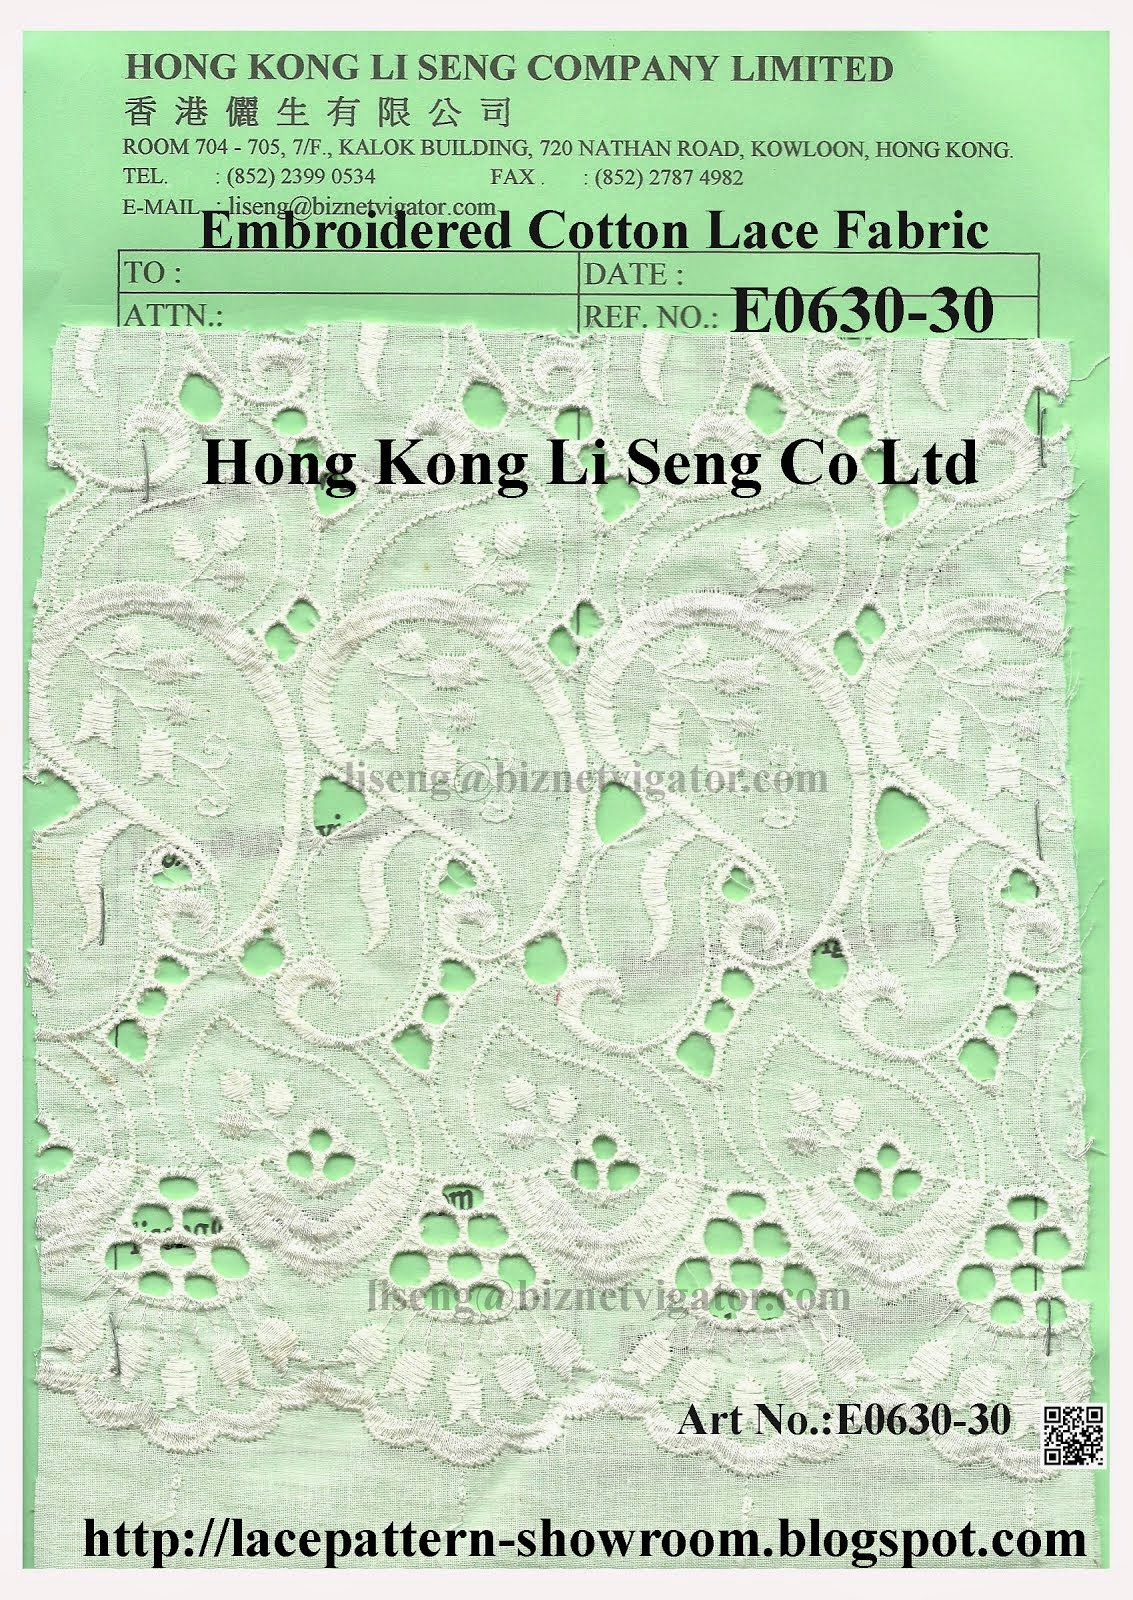 Embroidered Cotton Lace with End of Scallop Fabric Manufacturer - Hong Kong Li Seng Co Ltd